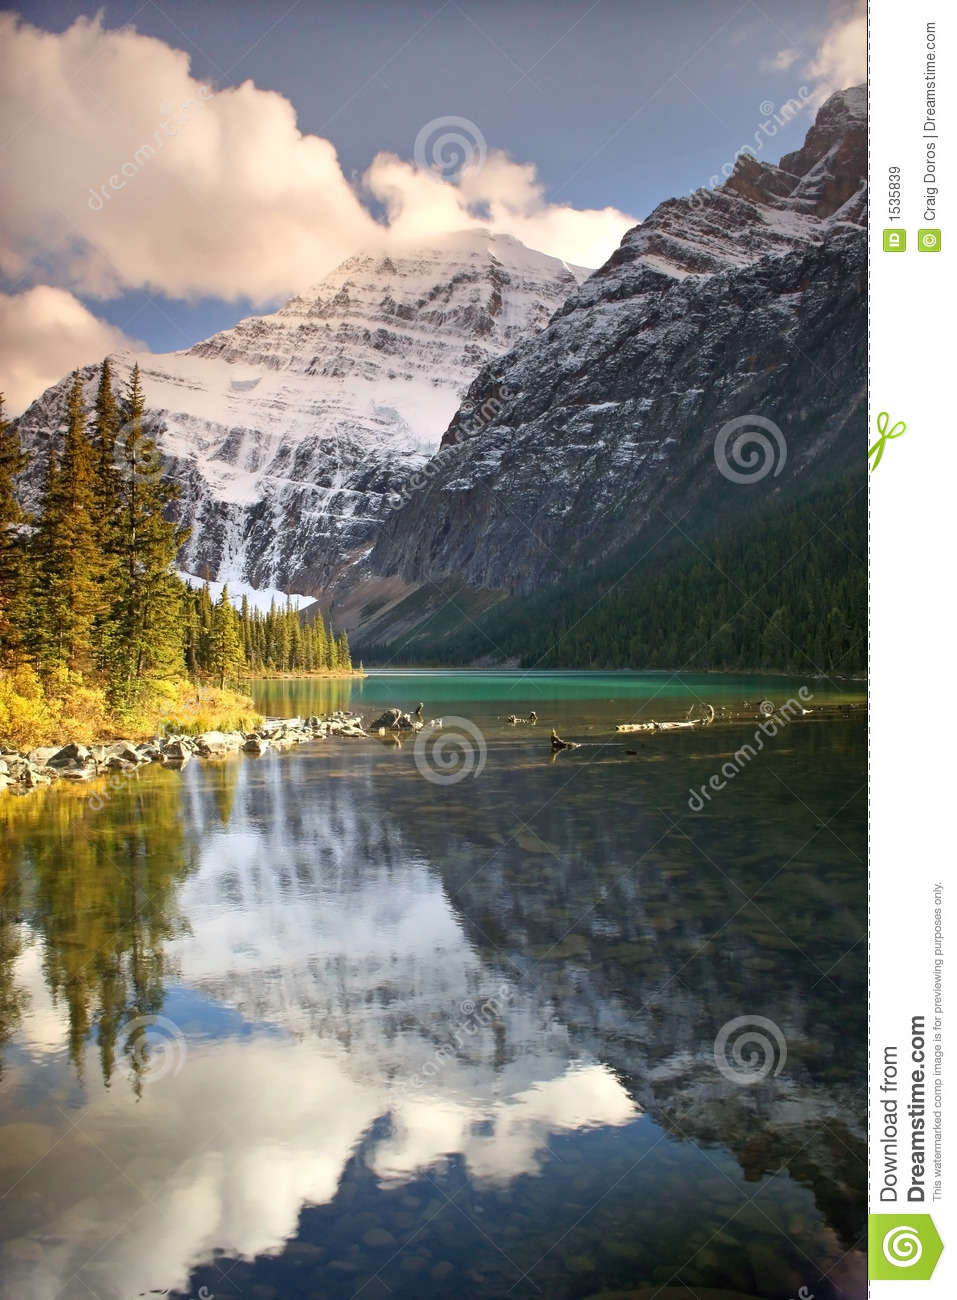 Nature s reflection s